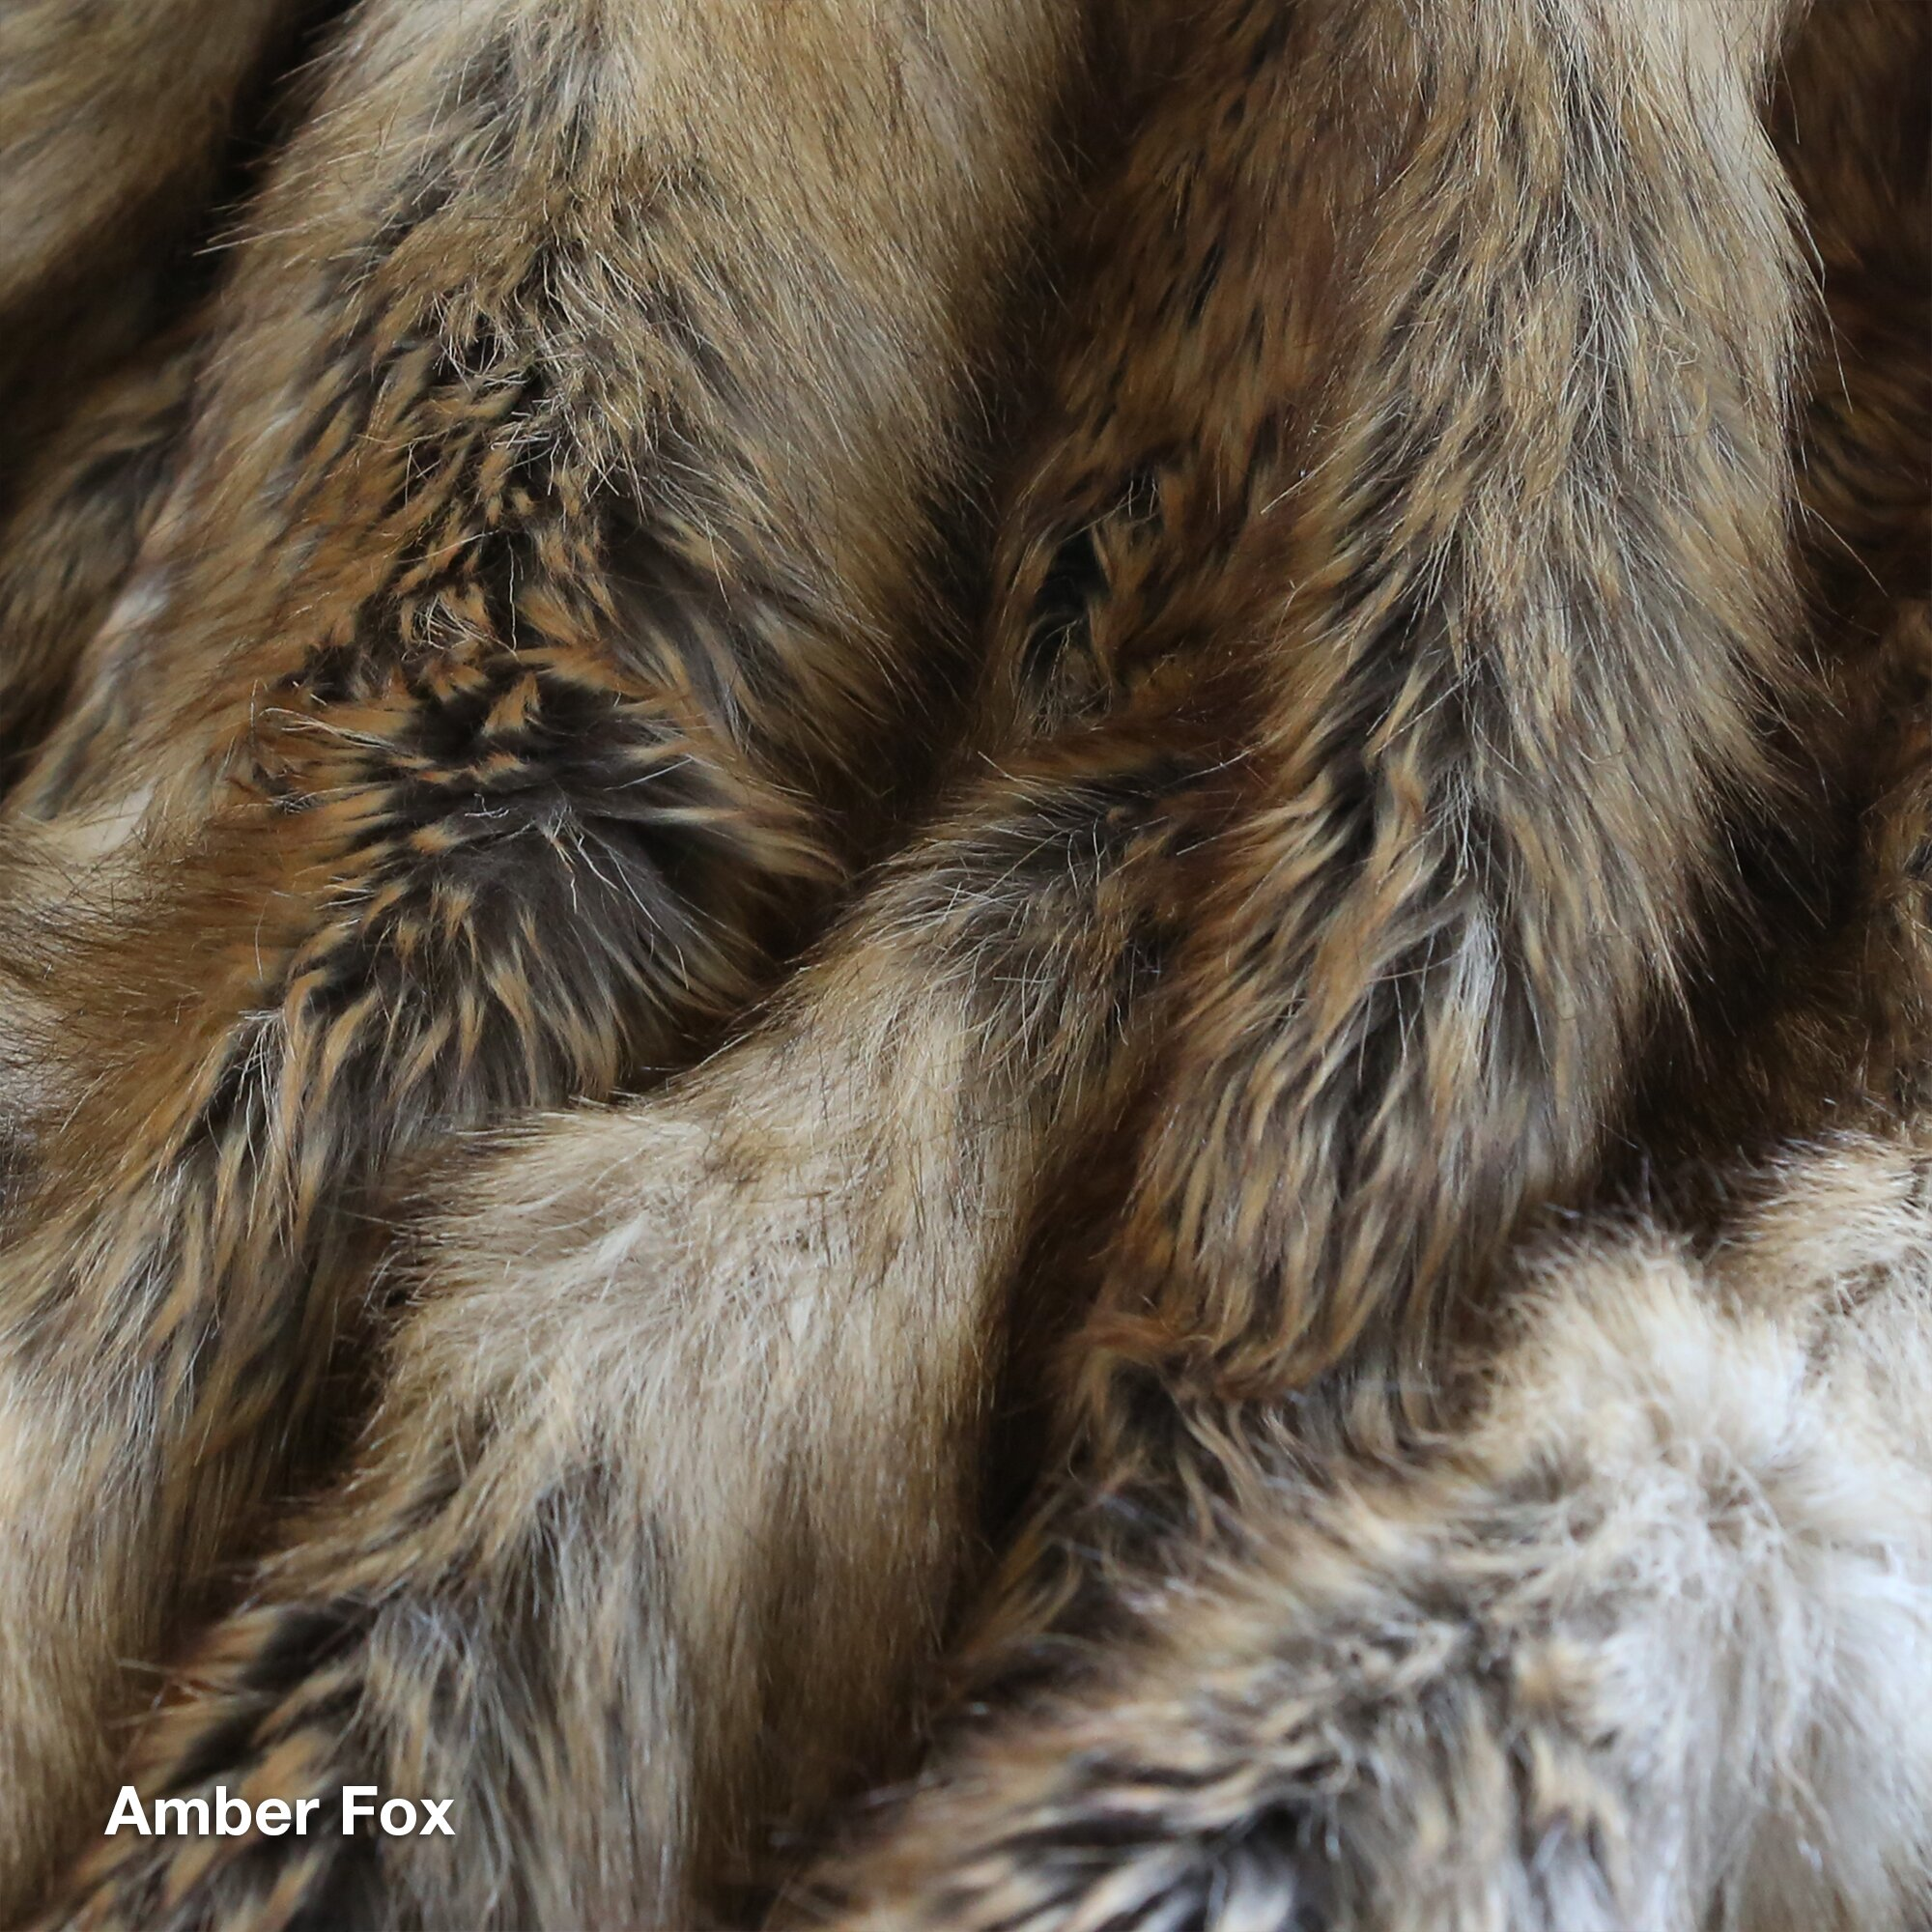 Dog Eating Wool Rug: Wild Mannered Luxury Long Fur Hand-Woven Area Rug